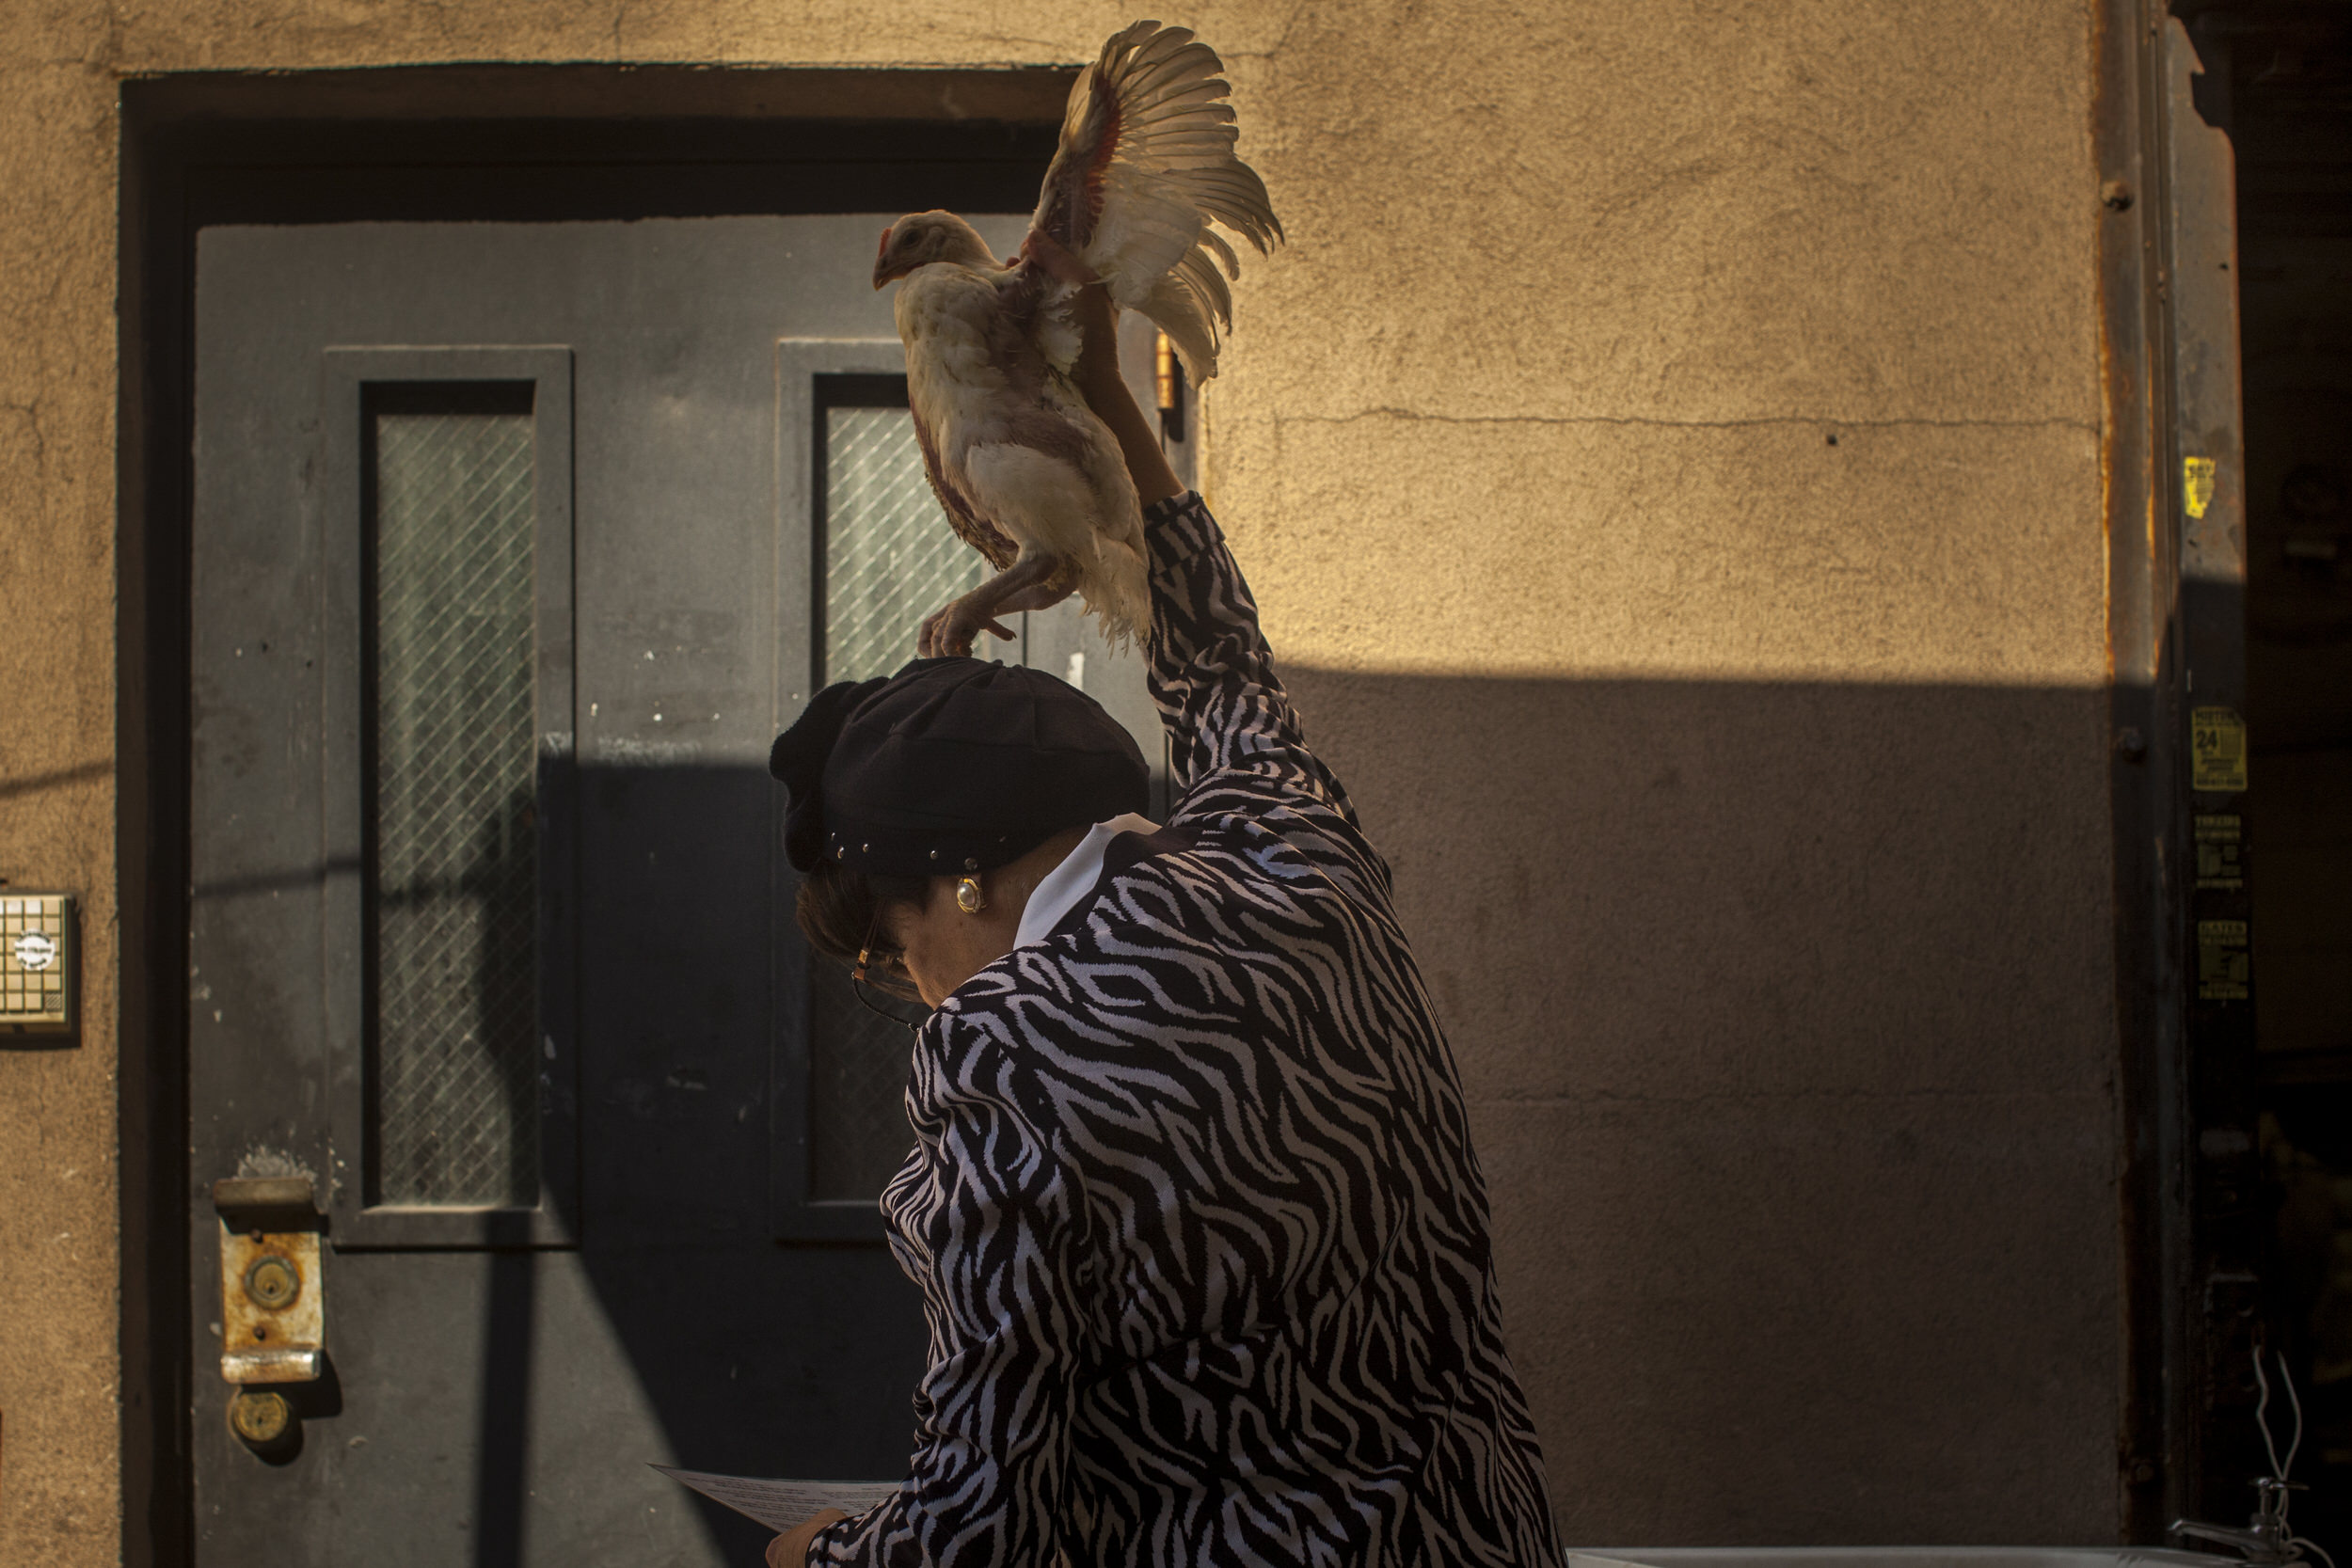 A Hasidic Jewish woman performs a penitential ritual, meant to transfer a person's sins to a chicken, in Williamsburg, Brooklyn.